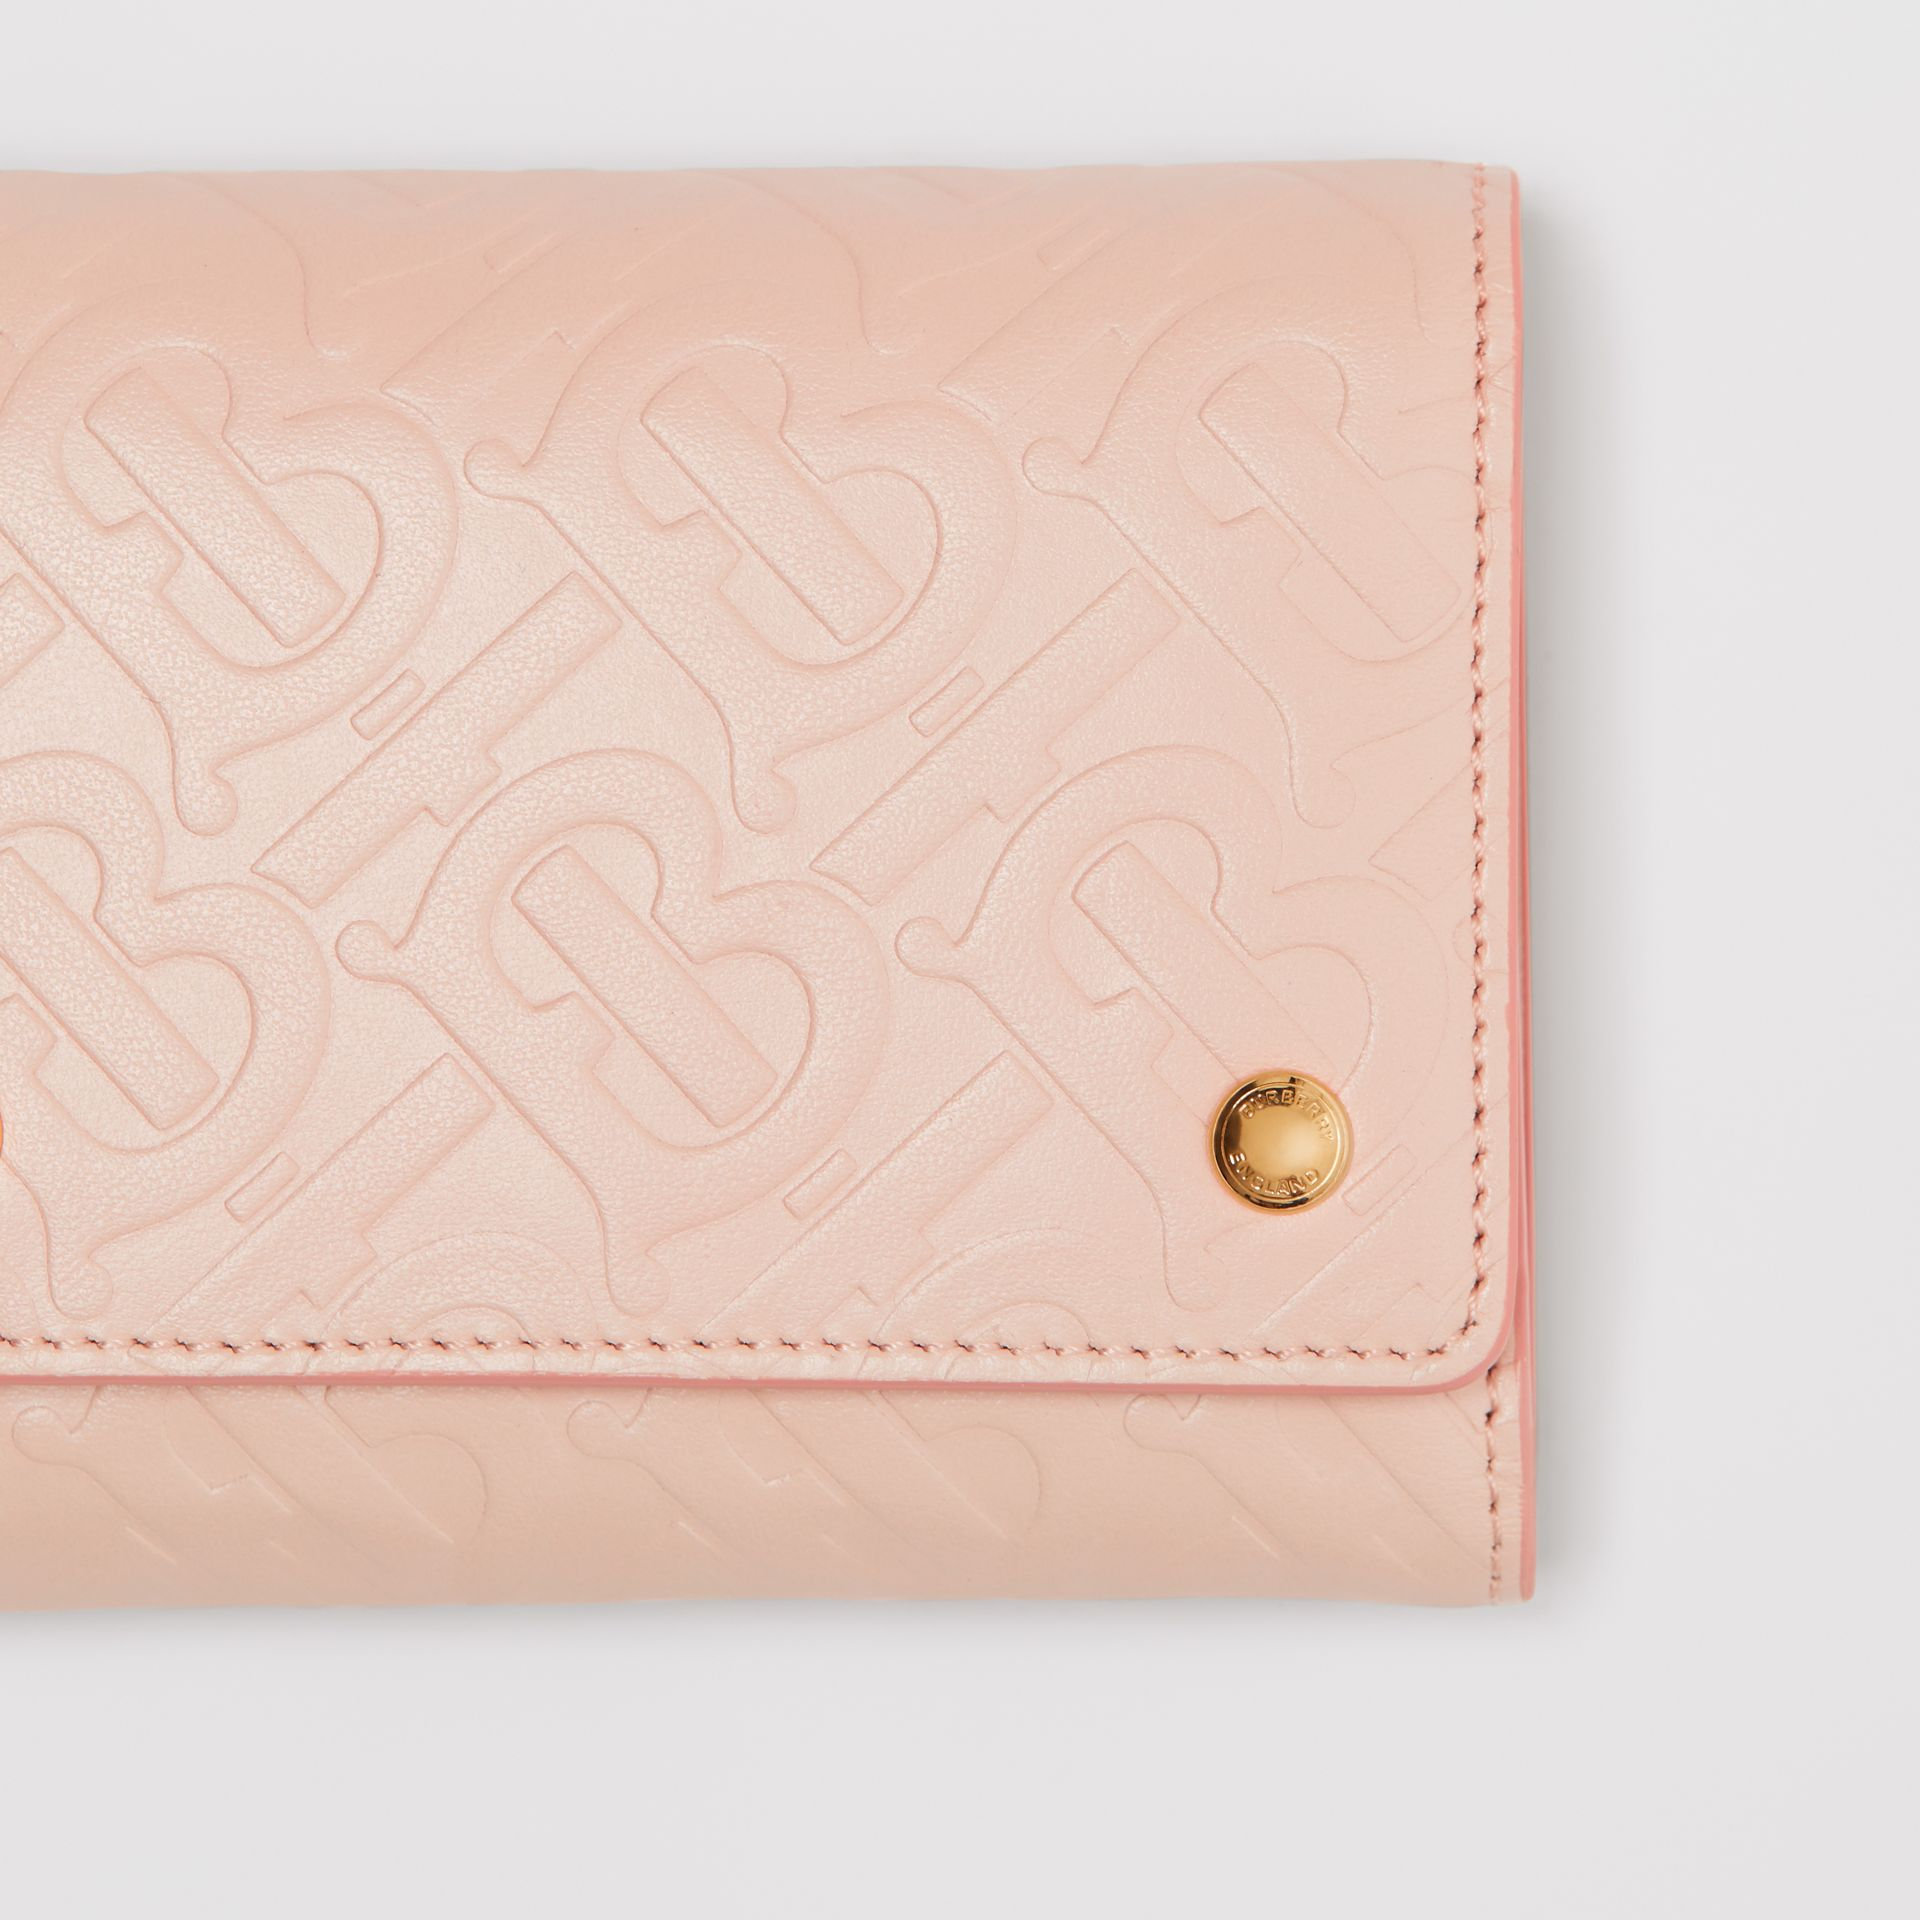 Small Monogram Leather Folding Wallet in Rose Beige - Women | Burberry - gallery image 1